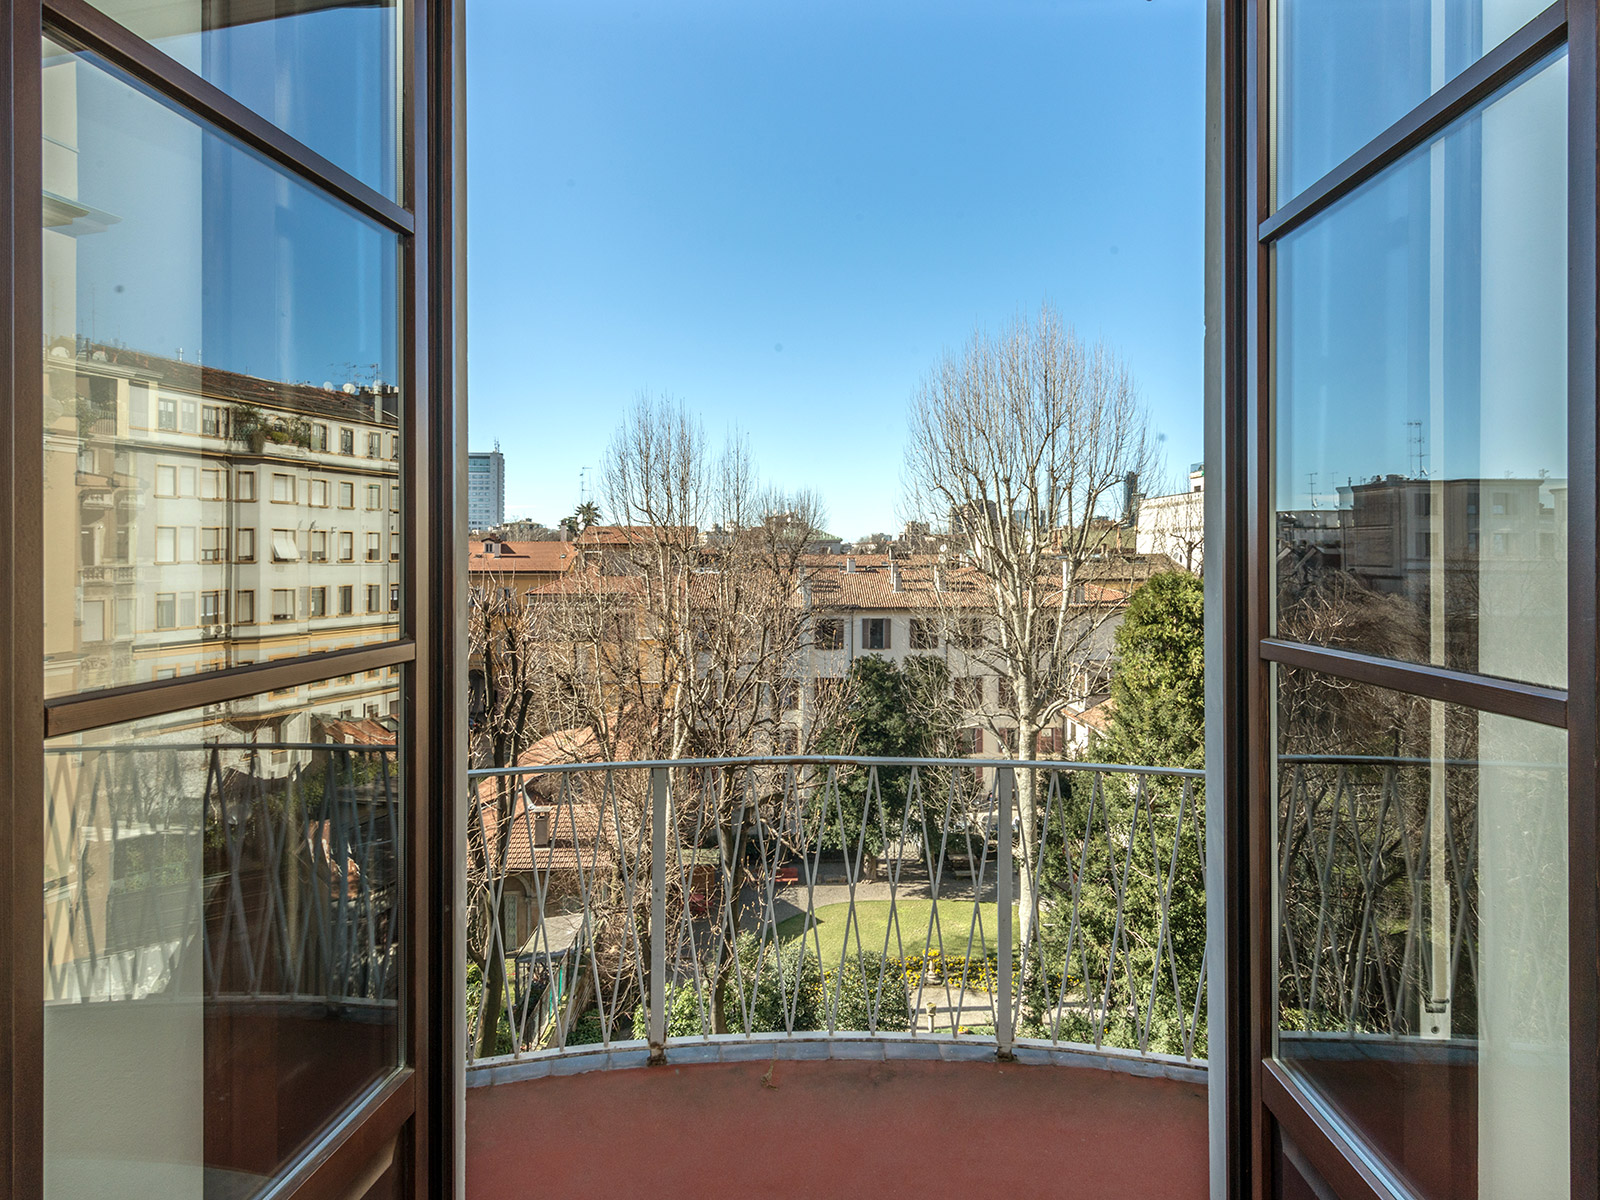 Single Family Home for Sale at Charming apartment in prestigious building Piazza Duse Milano, Milan 20122 Italy